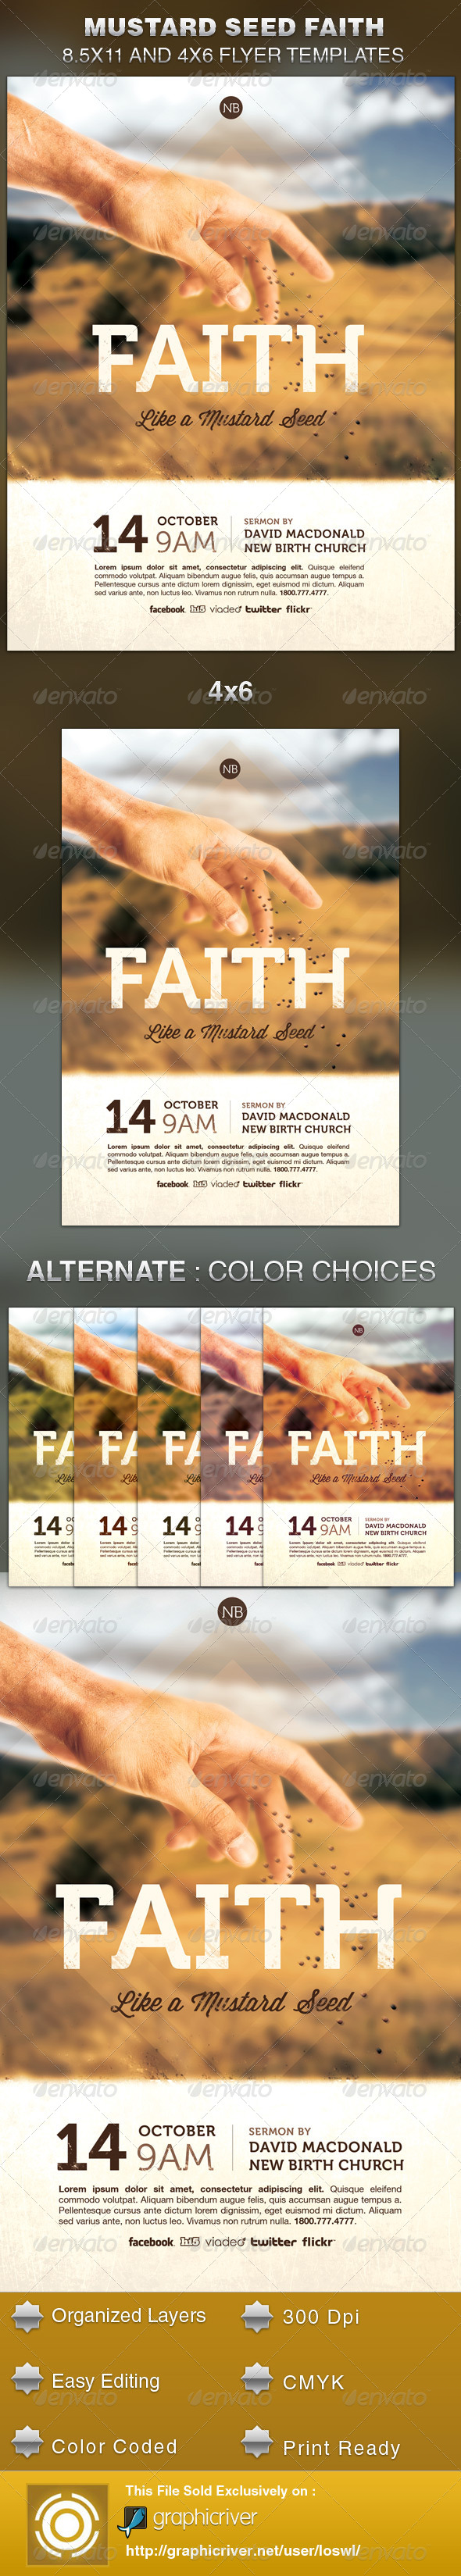 Mustard Seed Faith Church Flyer Template - Church Flyers